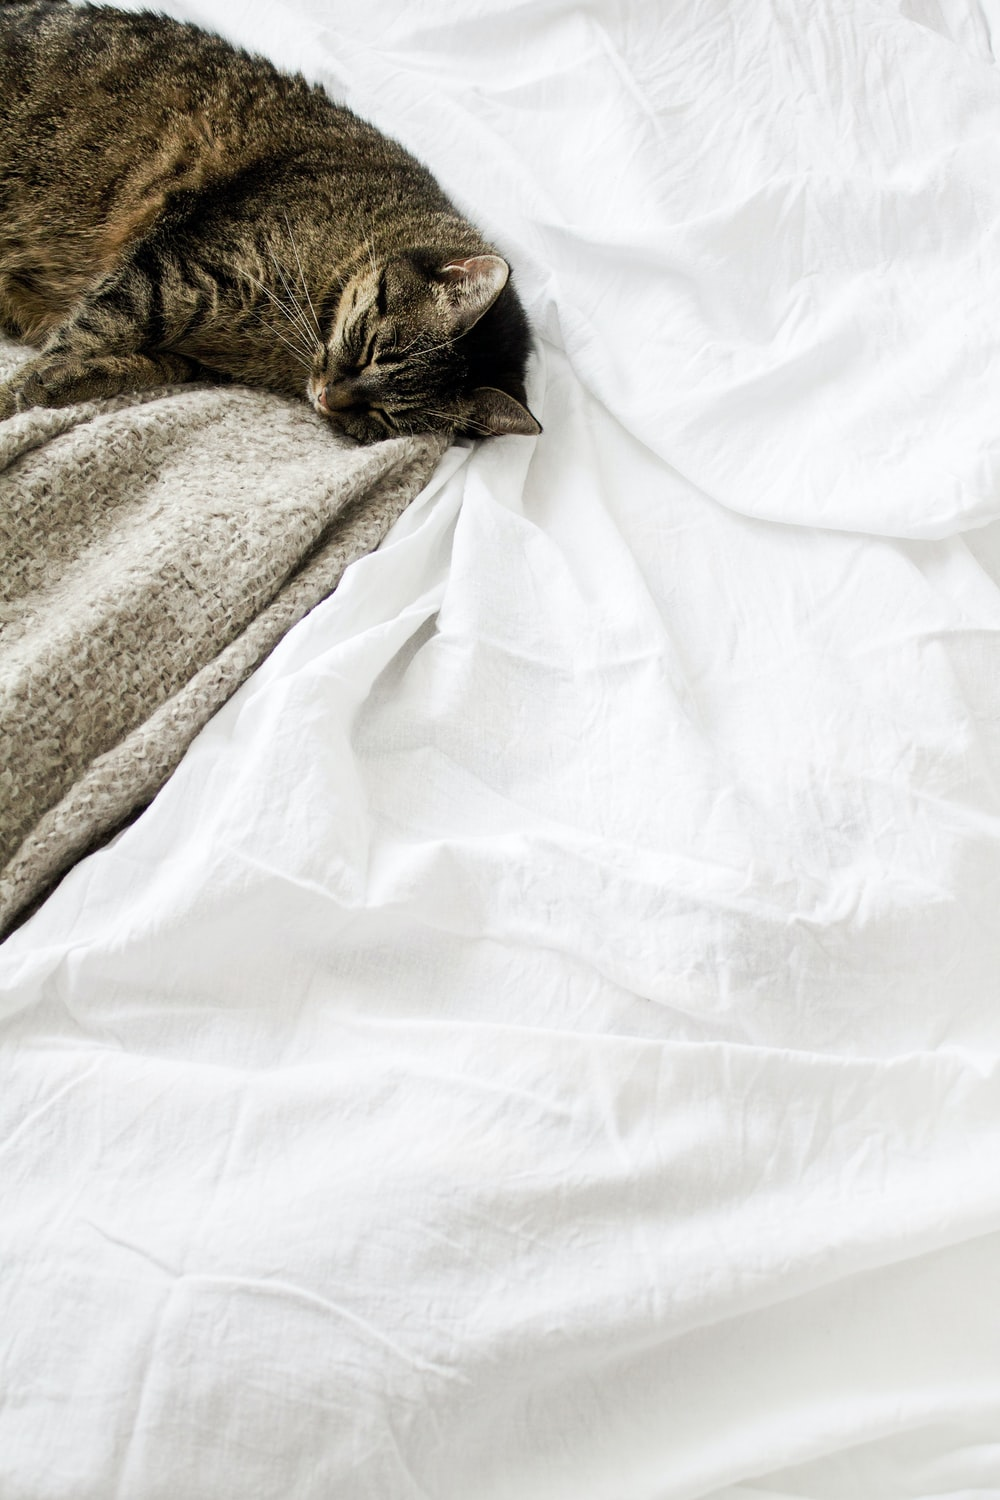 brown tabby cat laying on white textile